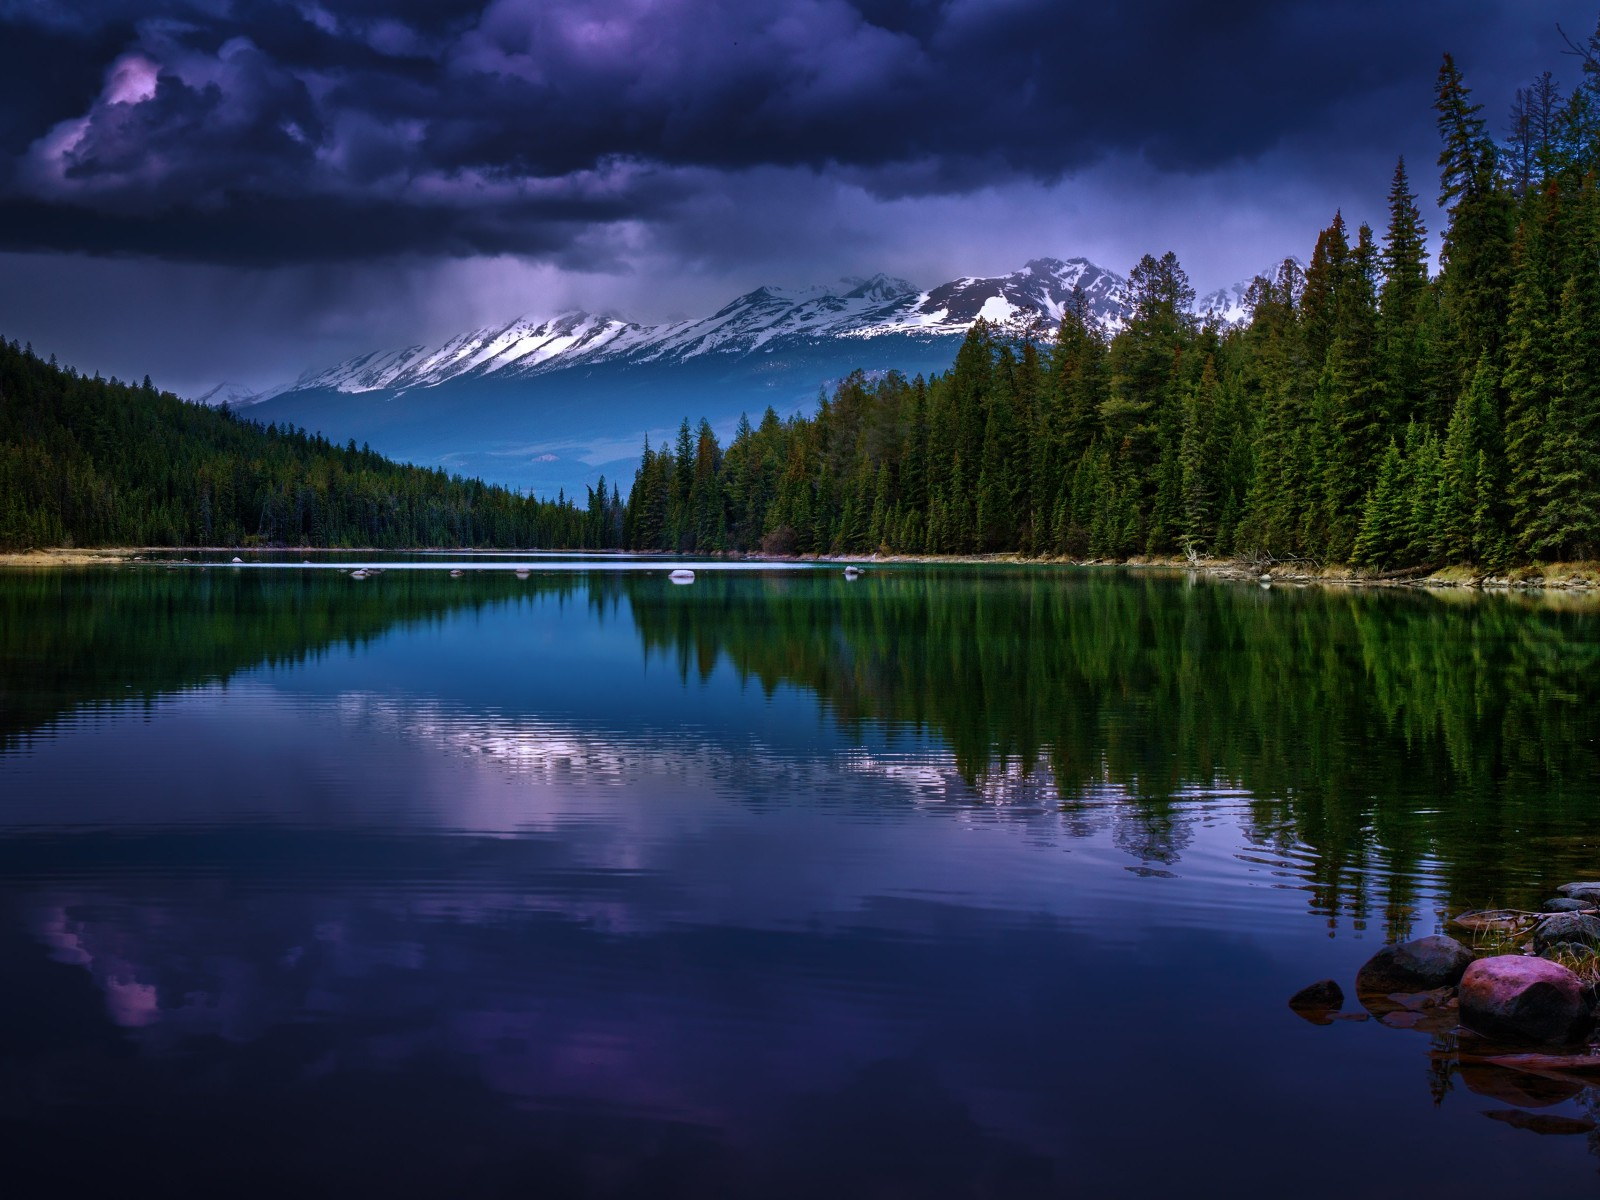 First Lake, Alberta, Canada Wallpaper for Desktop 1600x1200